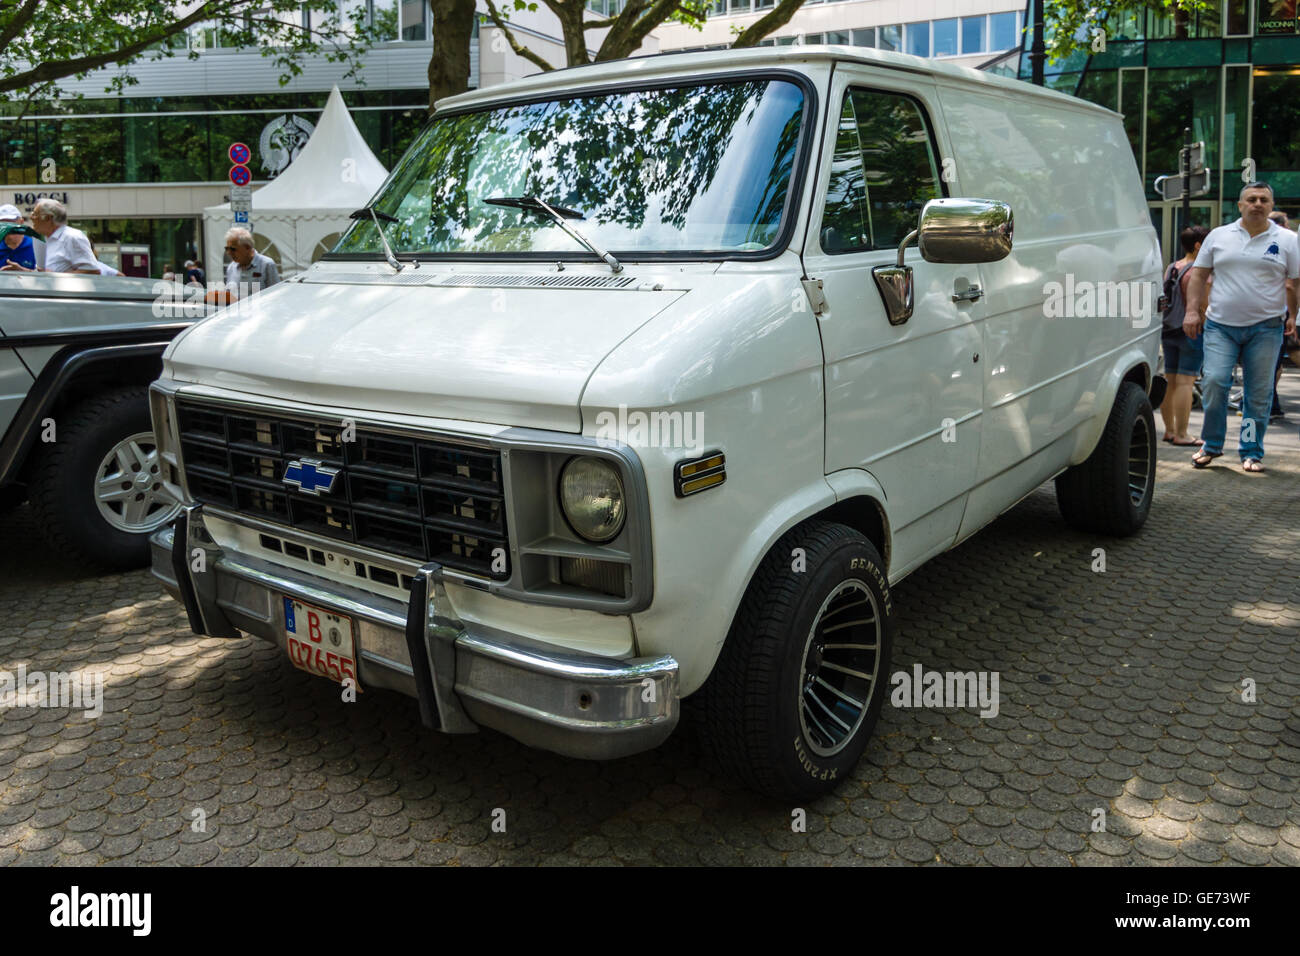 Chevrolet Van Stock Photos Images Alamy 1954 Chevy Step Berlin June 05 2016 Full Size Third Generation